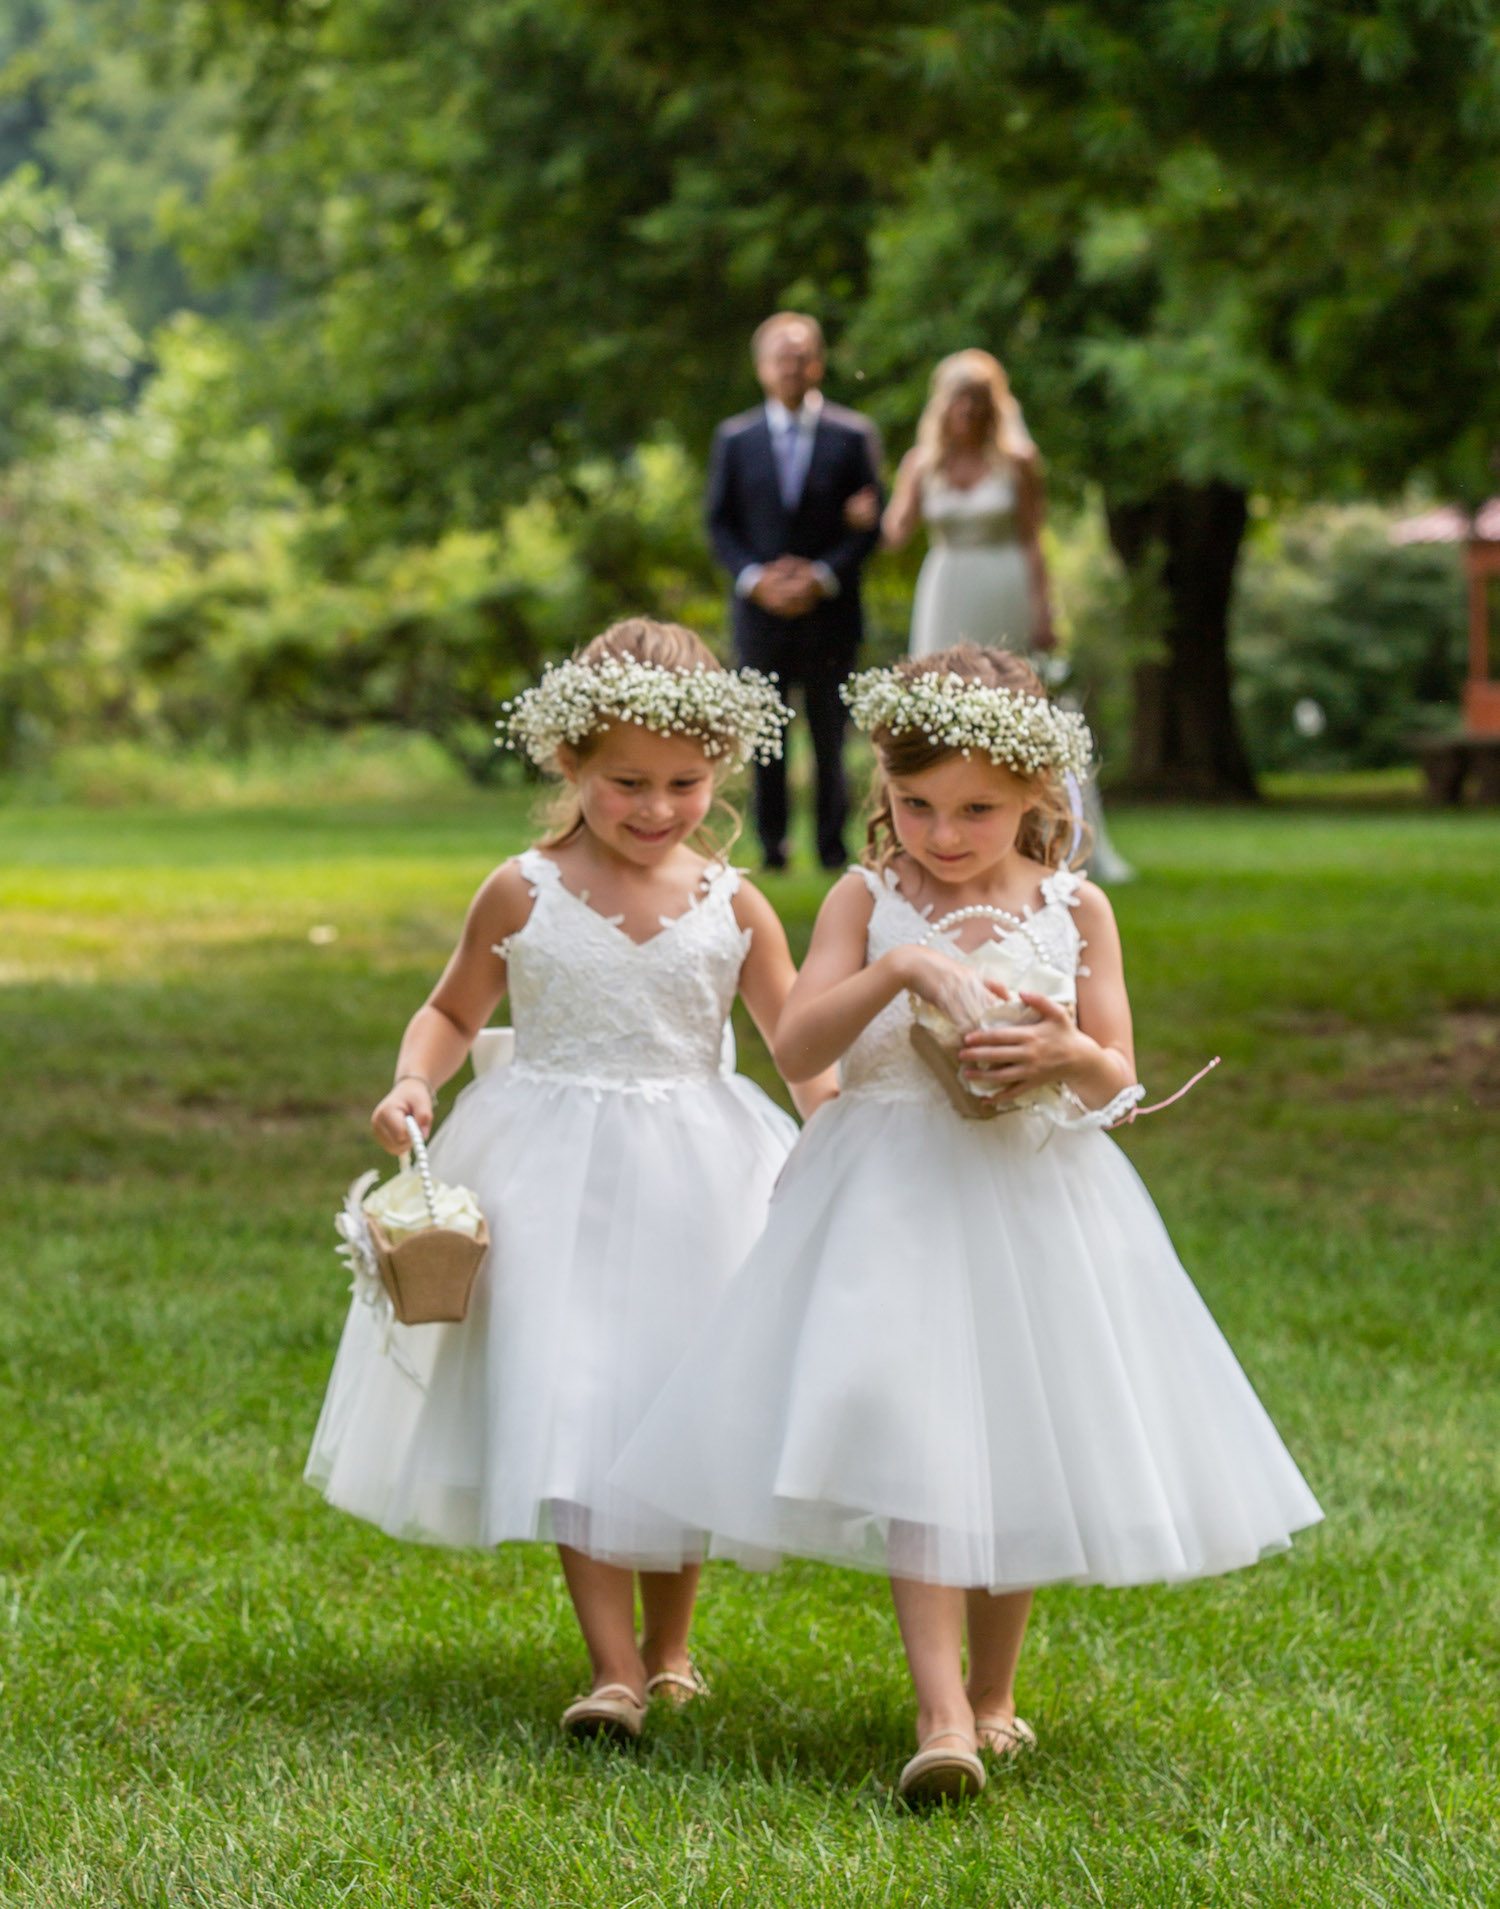 Cindyrellas Garden outdoor wedding ceremony by a private lake with wooded backdrops, queen anne's lace crowns on flower girls